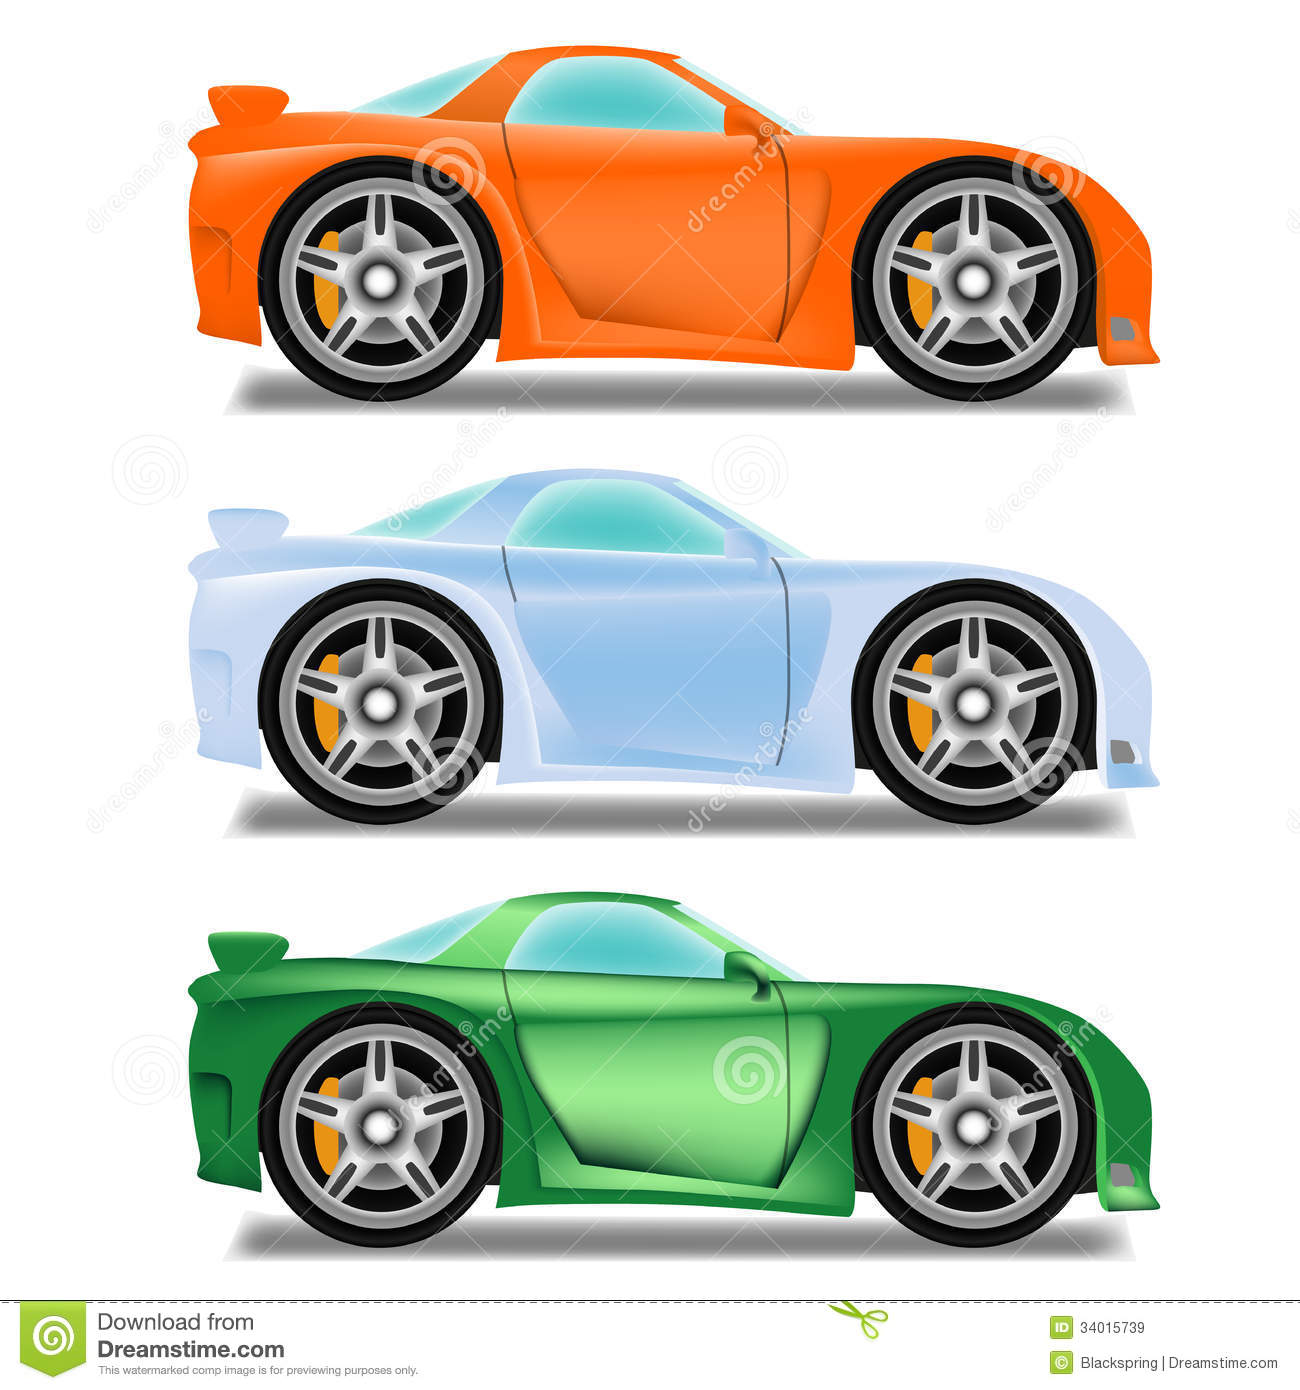 Cartoon Race Car Pictures Group with 51+ items.